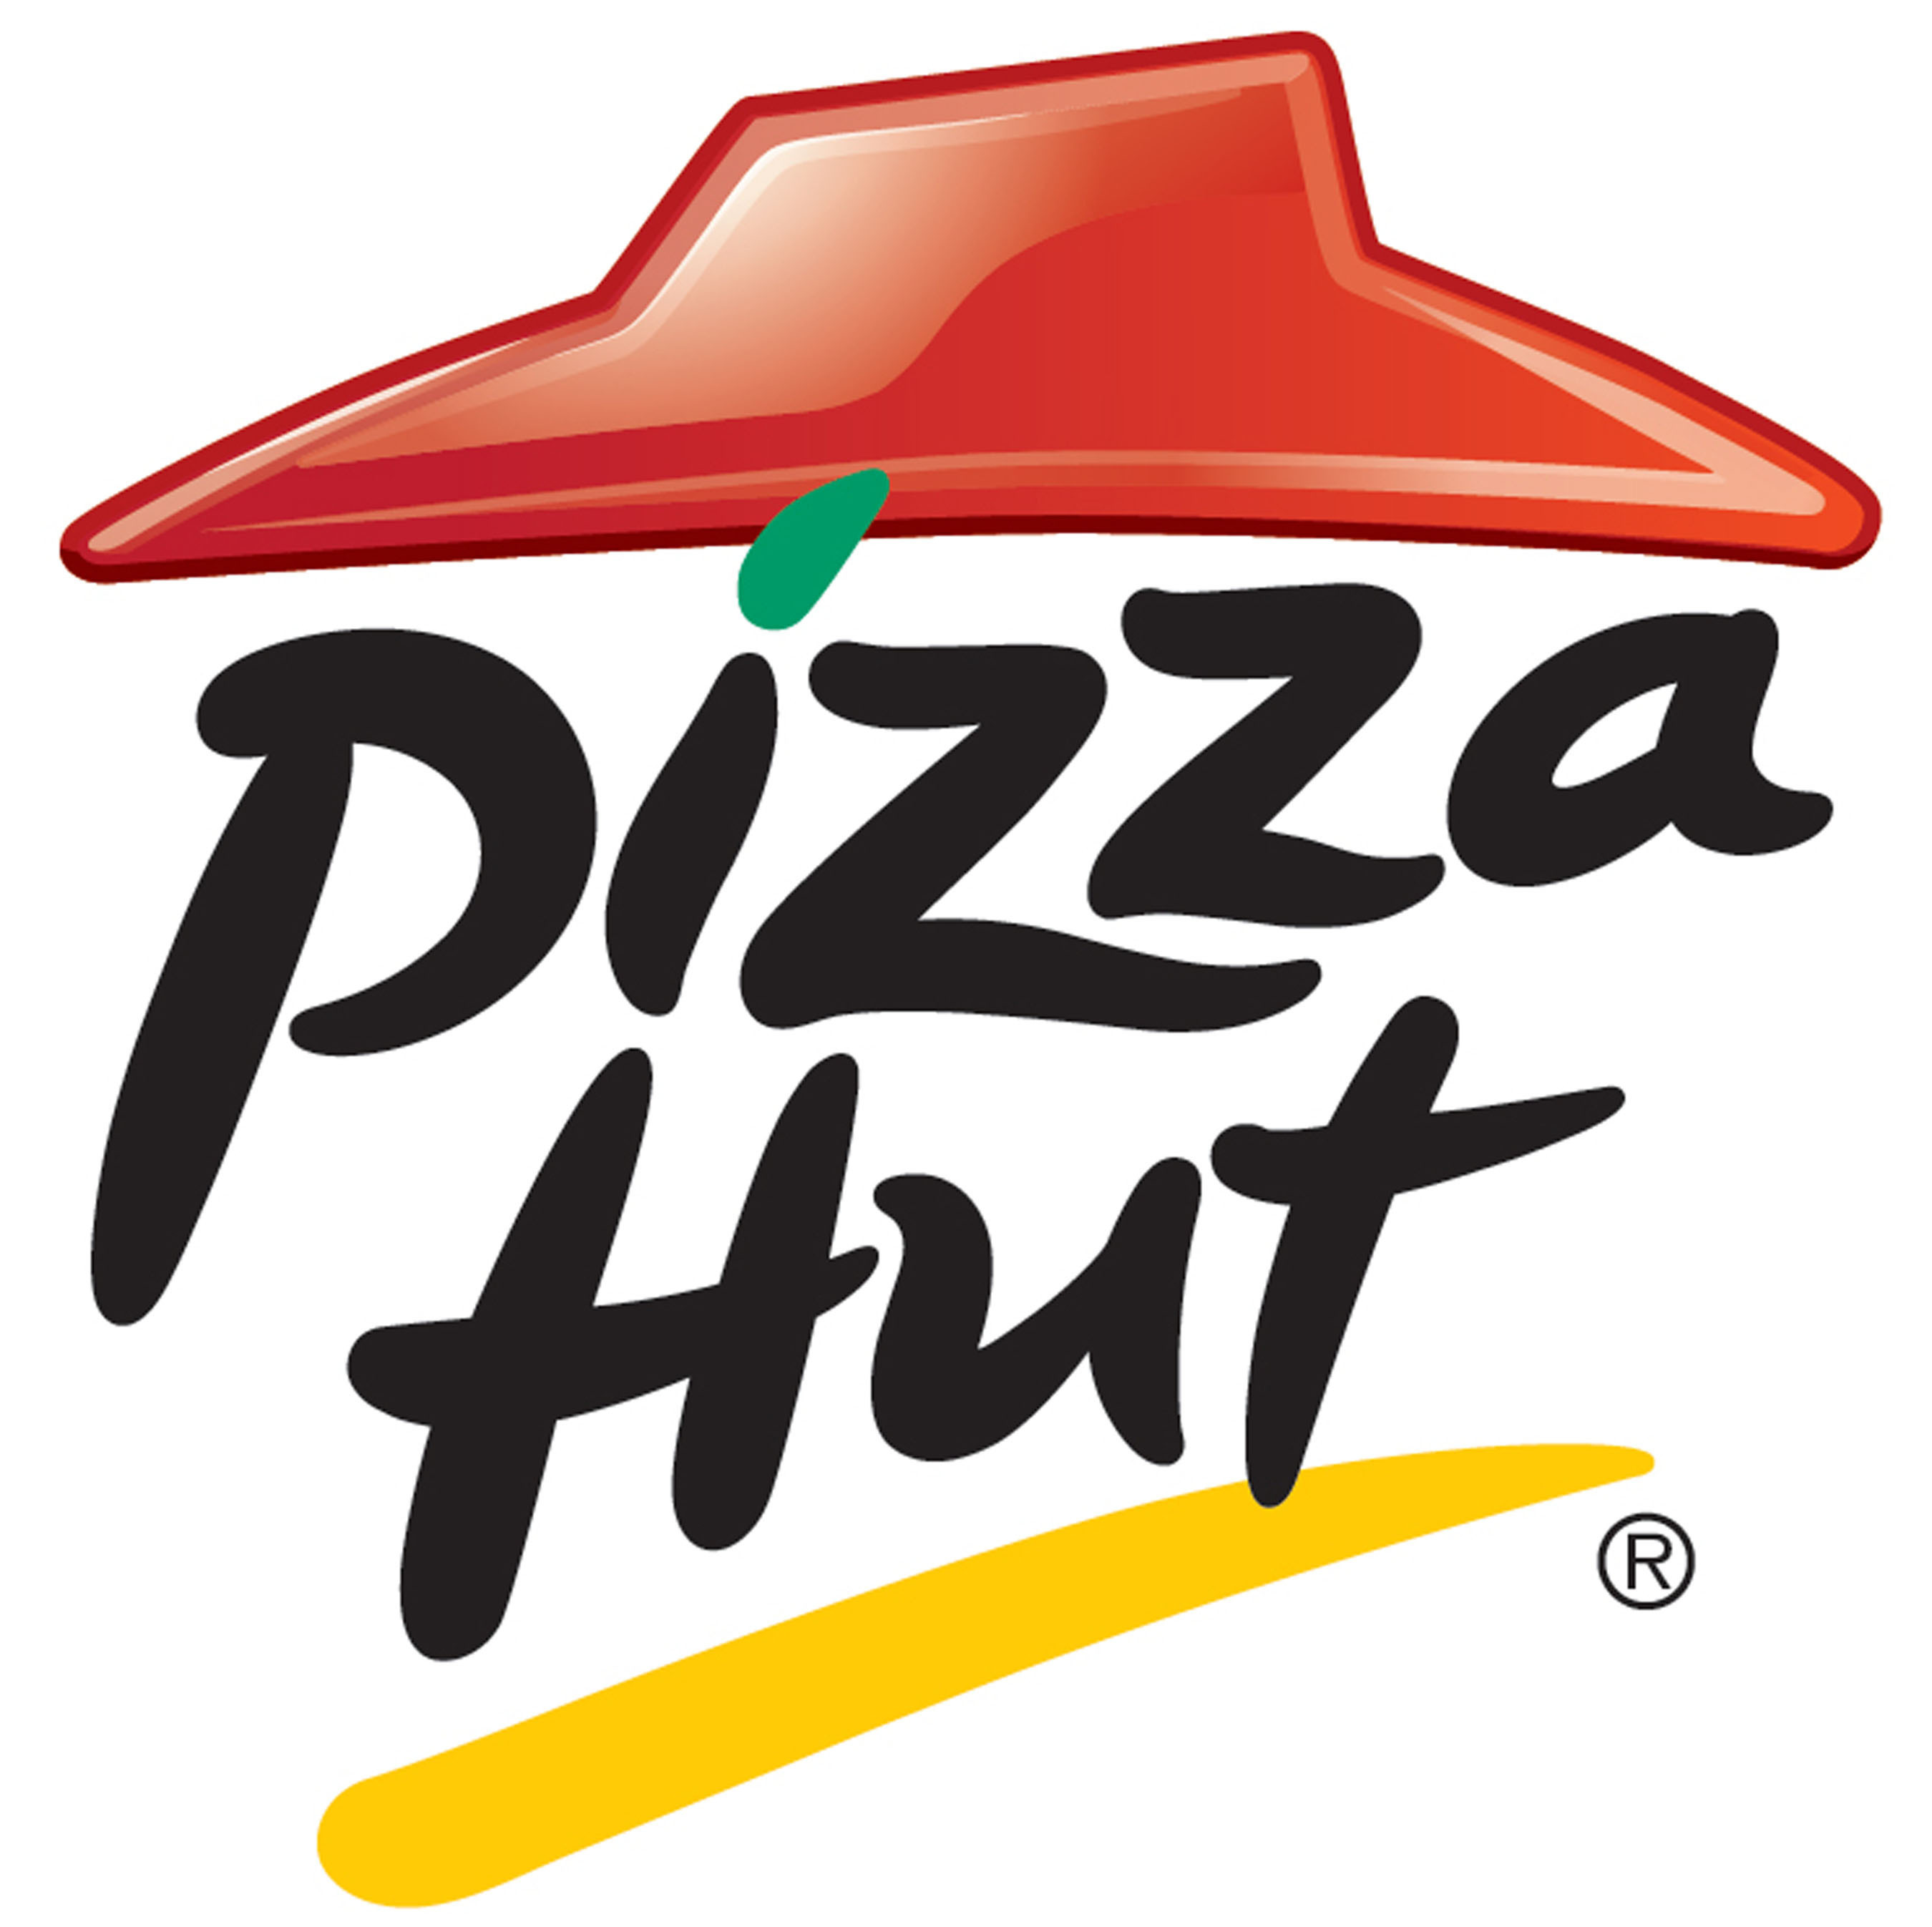 Print-Pizza-Hut